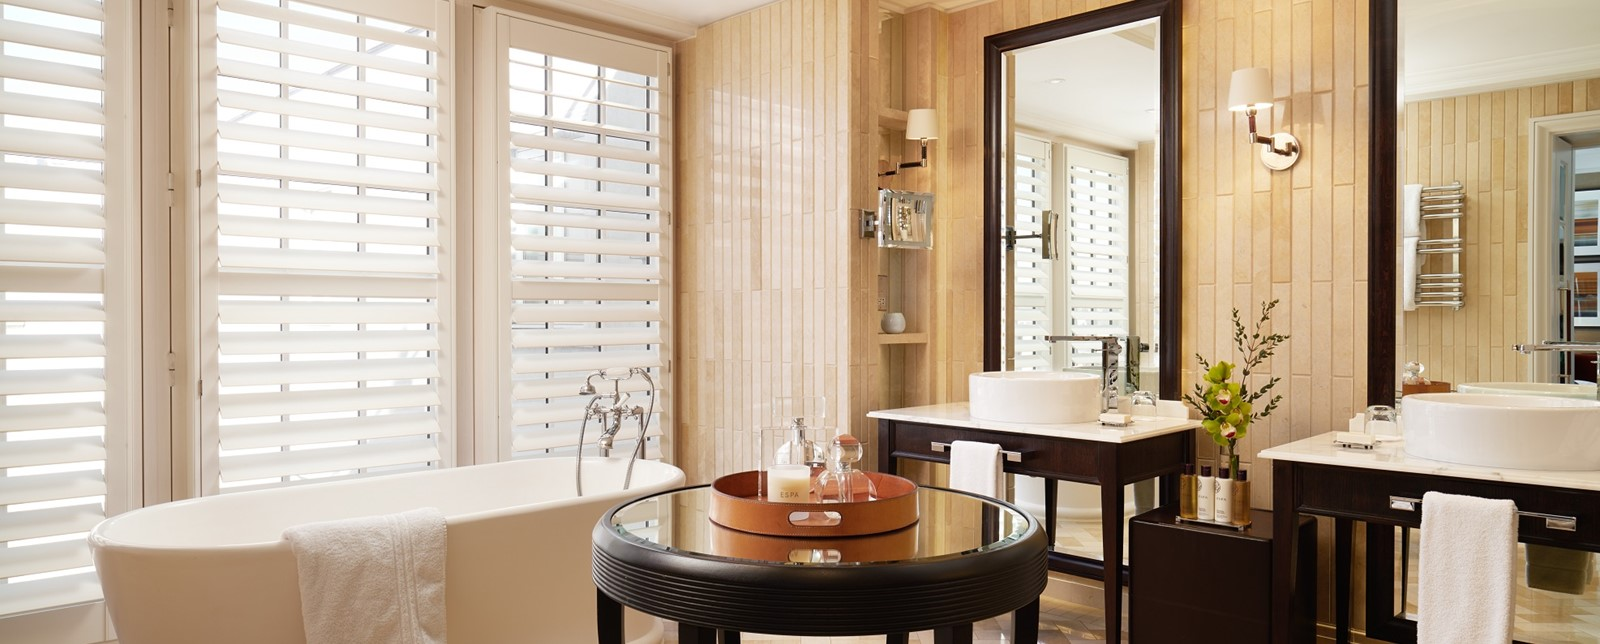 corinthia london explorers bathroom